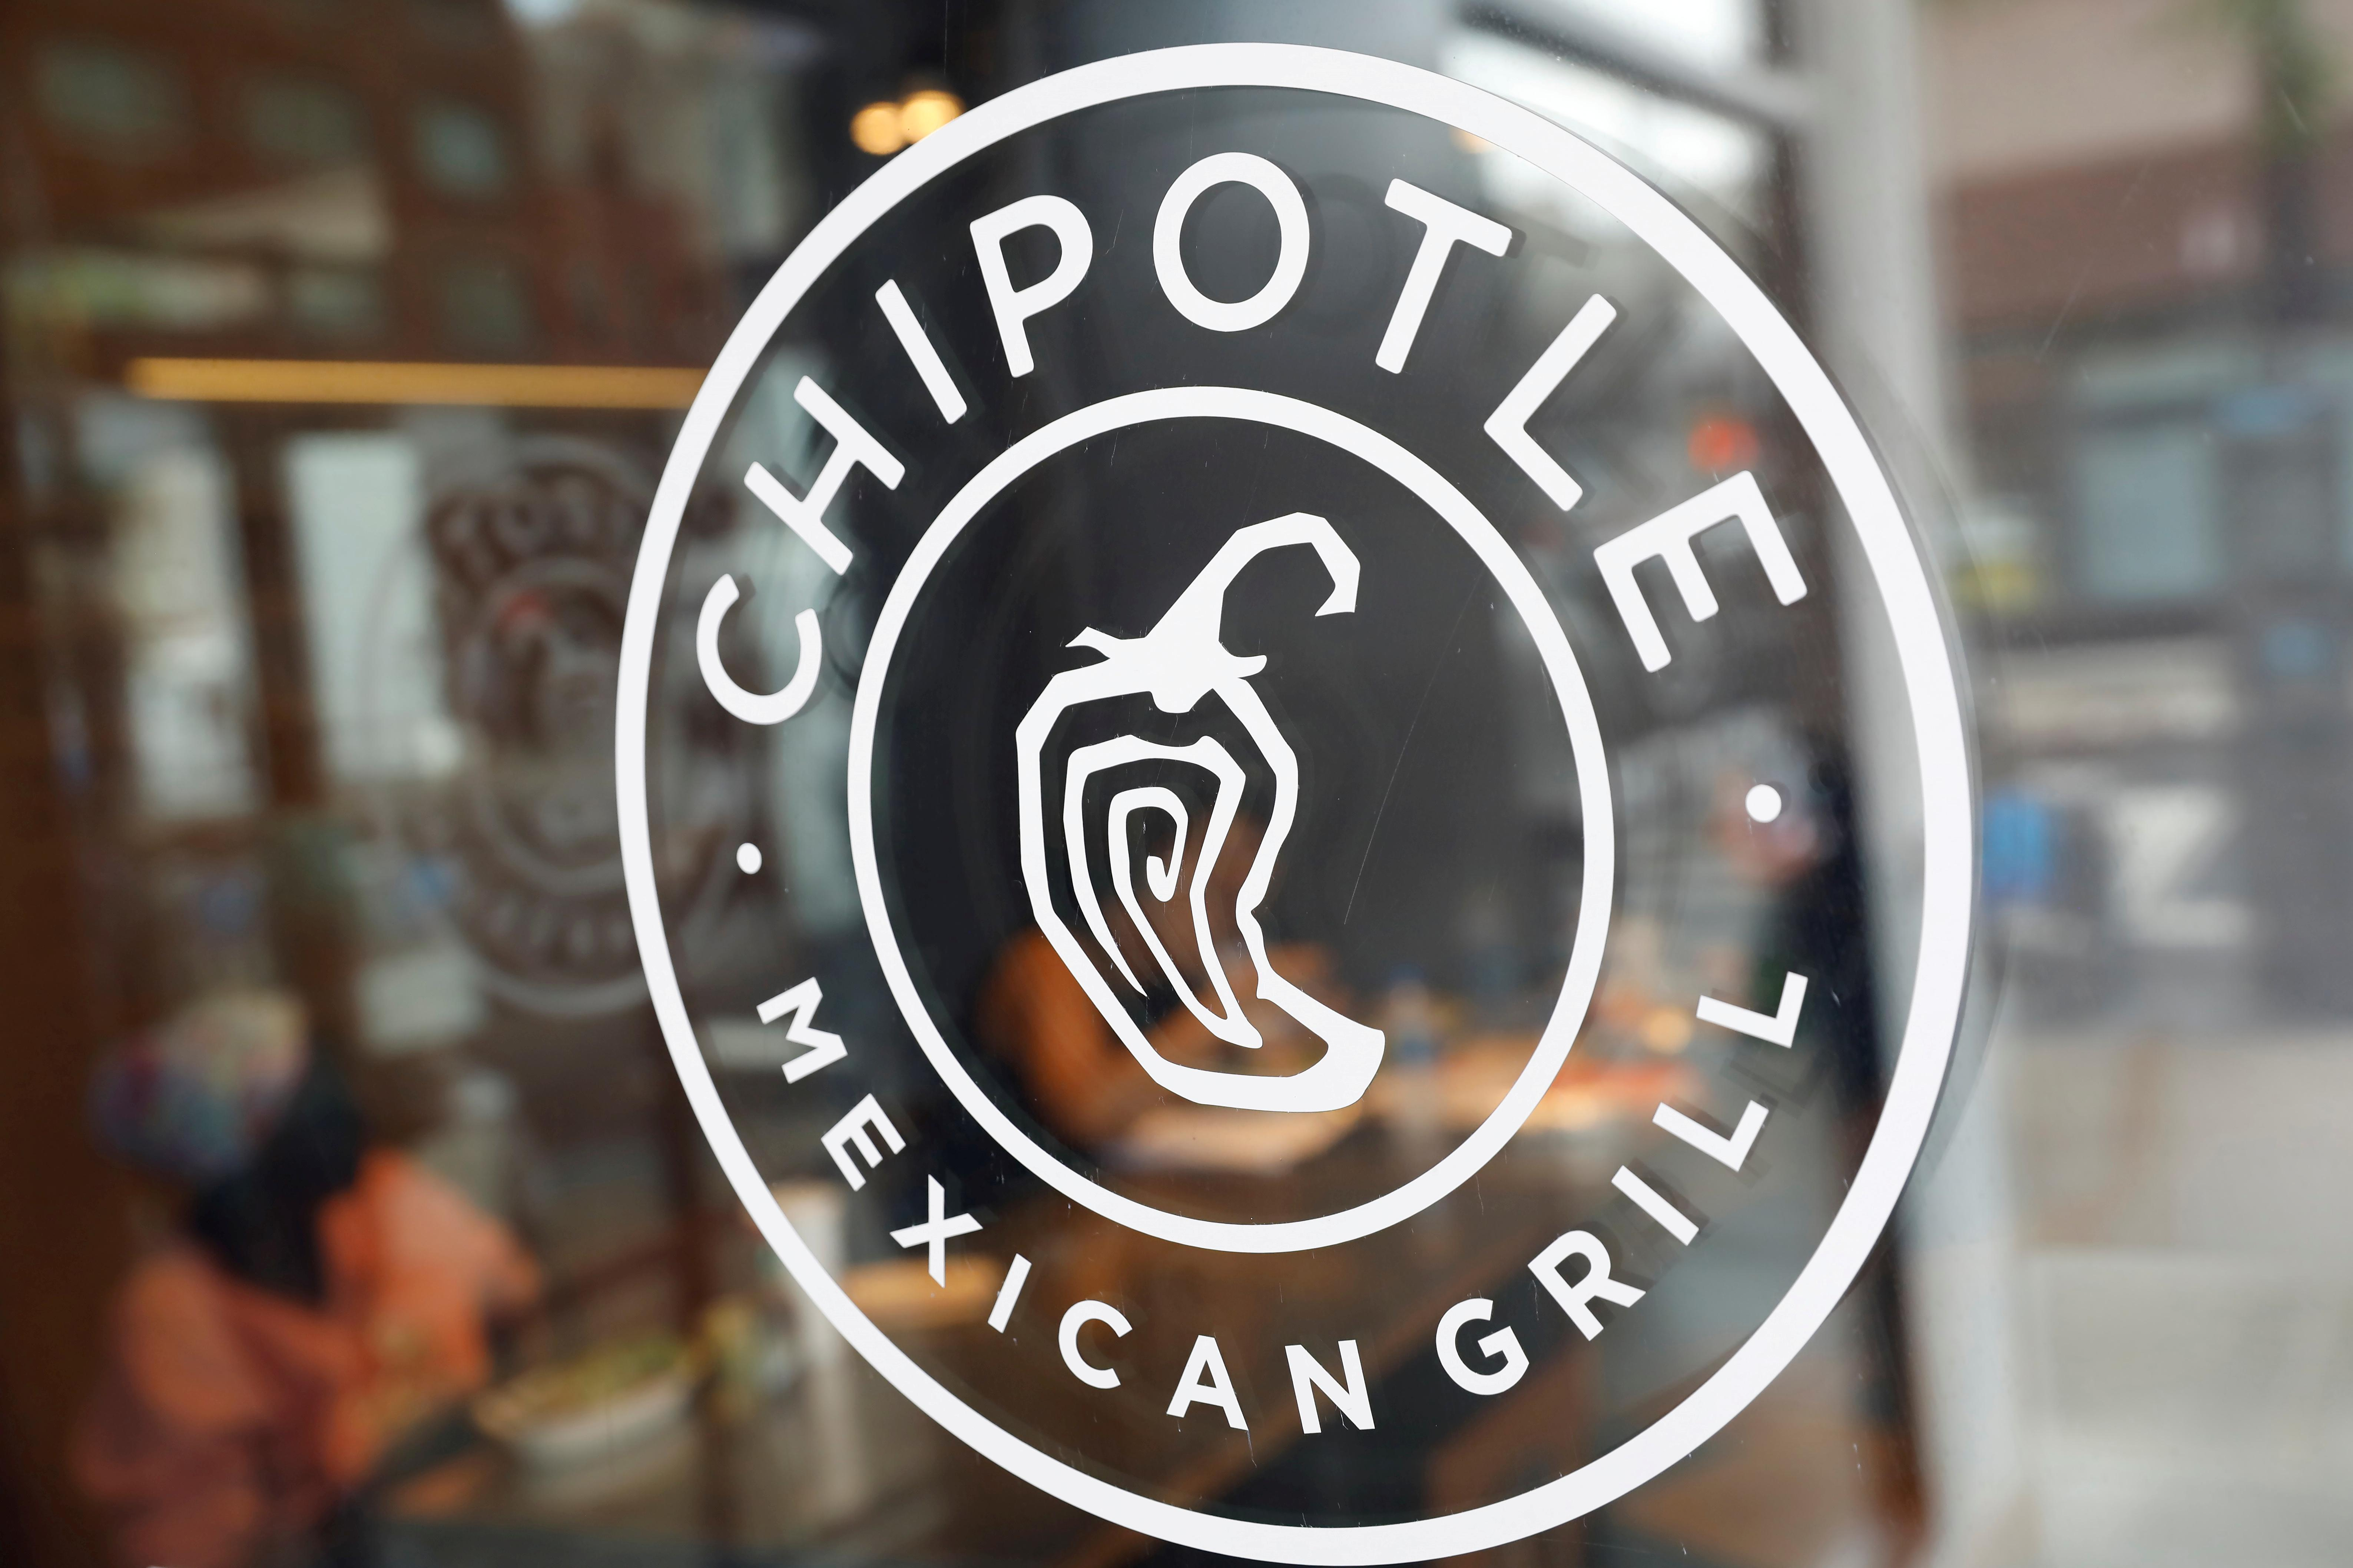 The logo of Chipotle Mexican Grill is seen at the Chipotle Next Kitchen in Manhattan, New York, U.S., June 28, 2018.  Shannon Stapleton